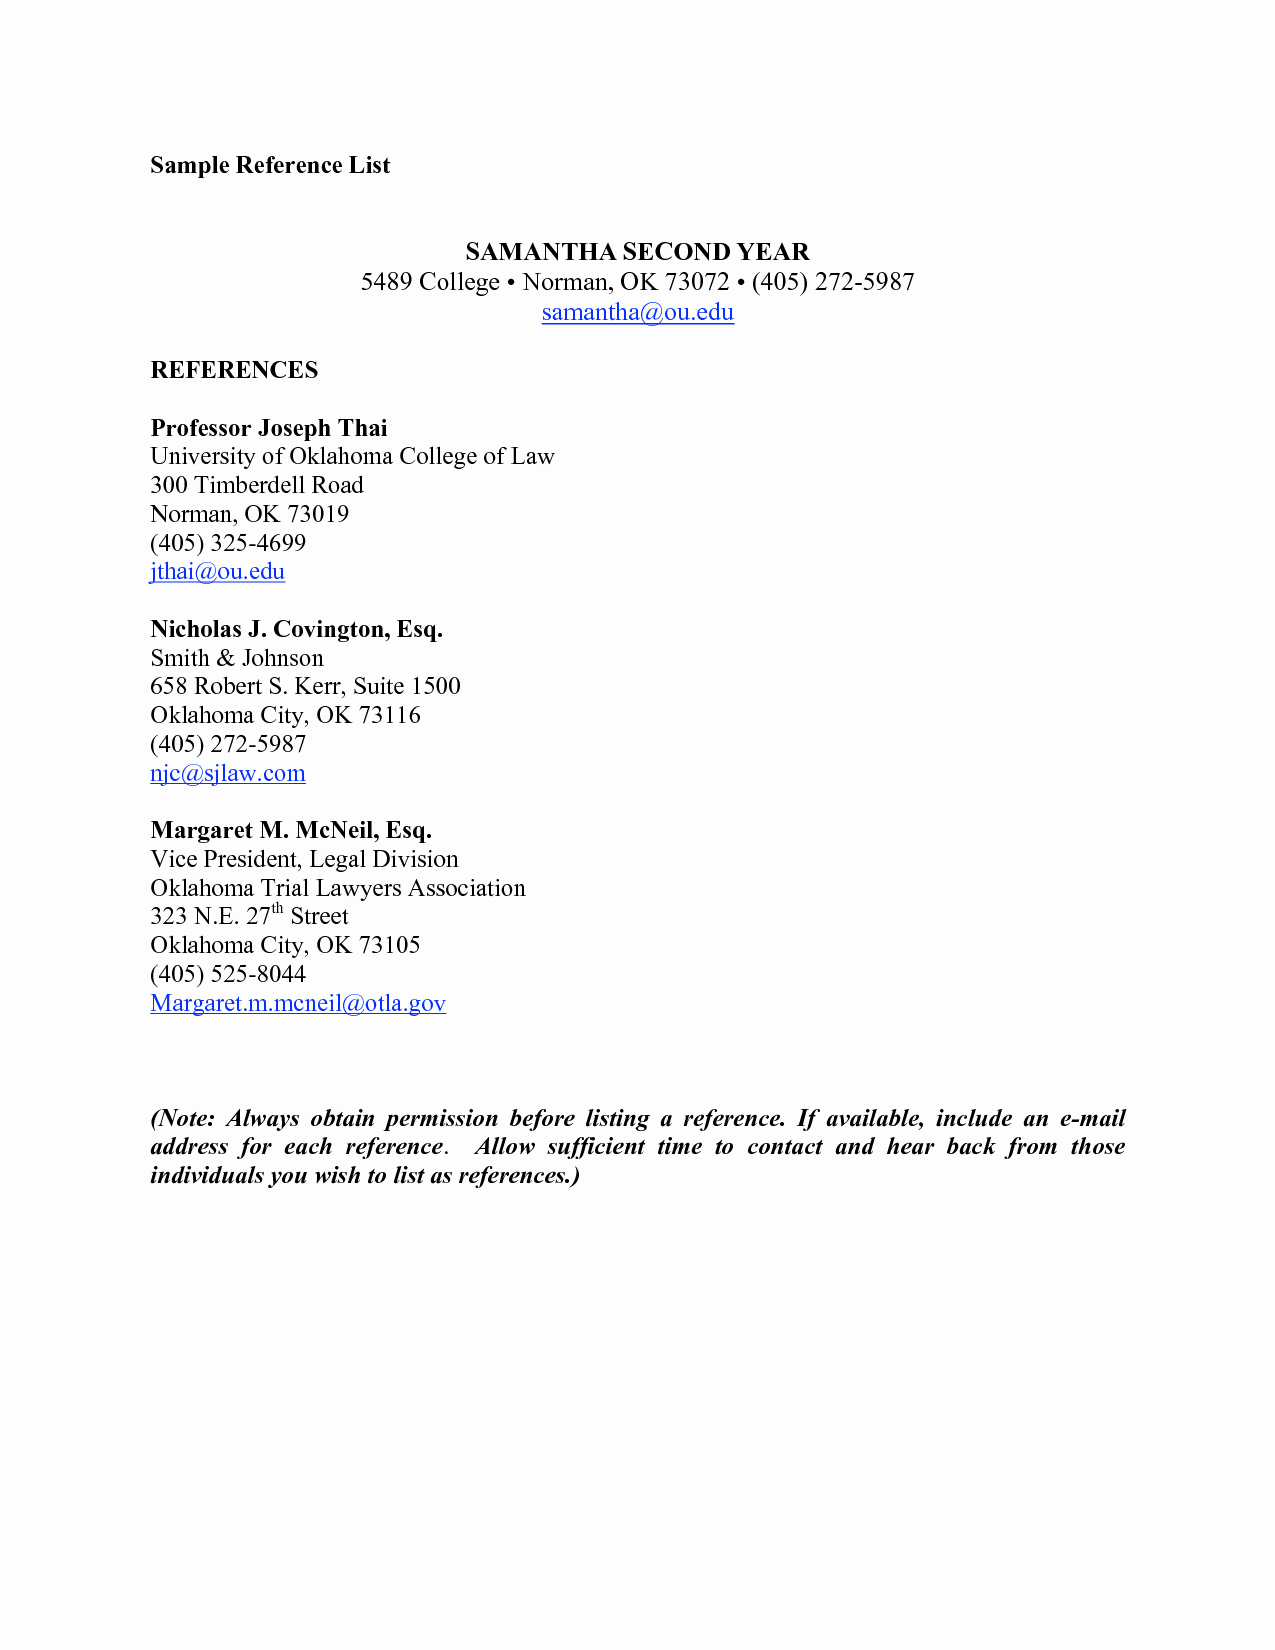 Listing References On A Resume Inspirational List References Template